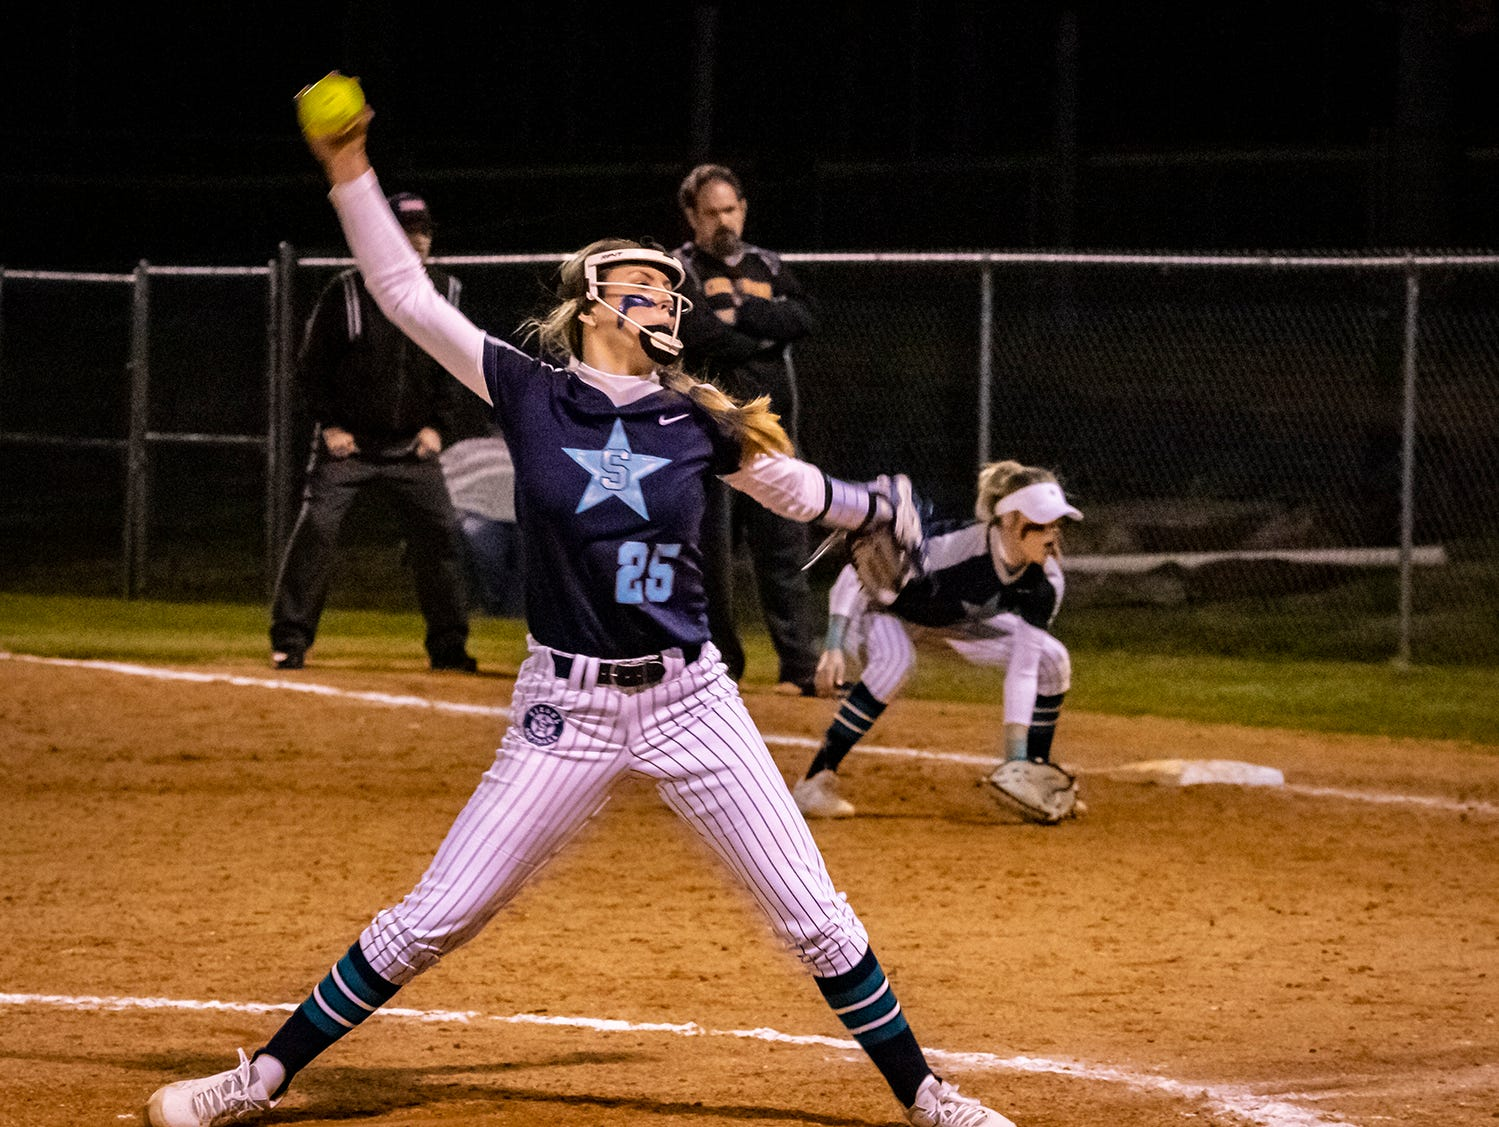 Siegel pitcher Sophie Golliver first a pitch during her shutout performance against Smyrna Monday.